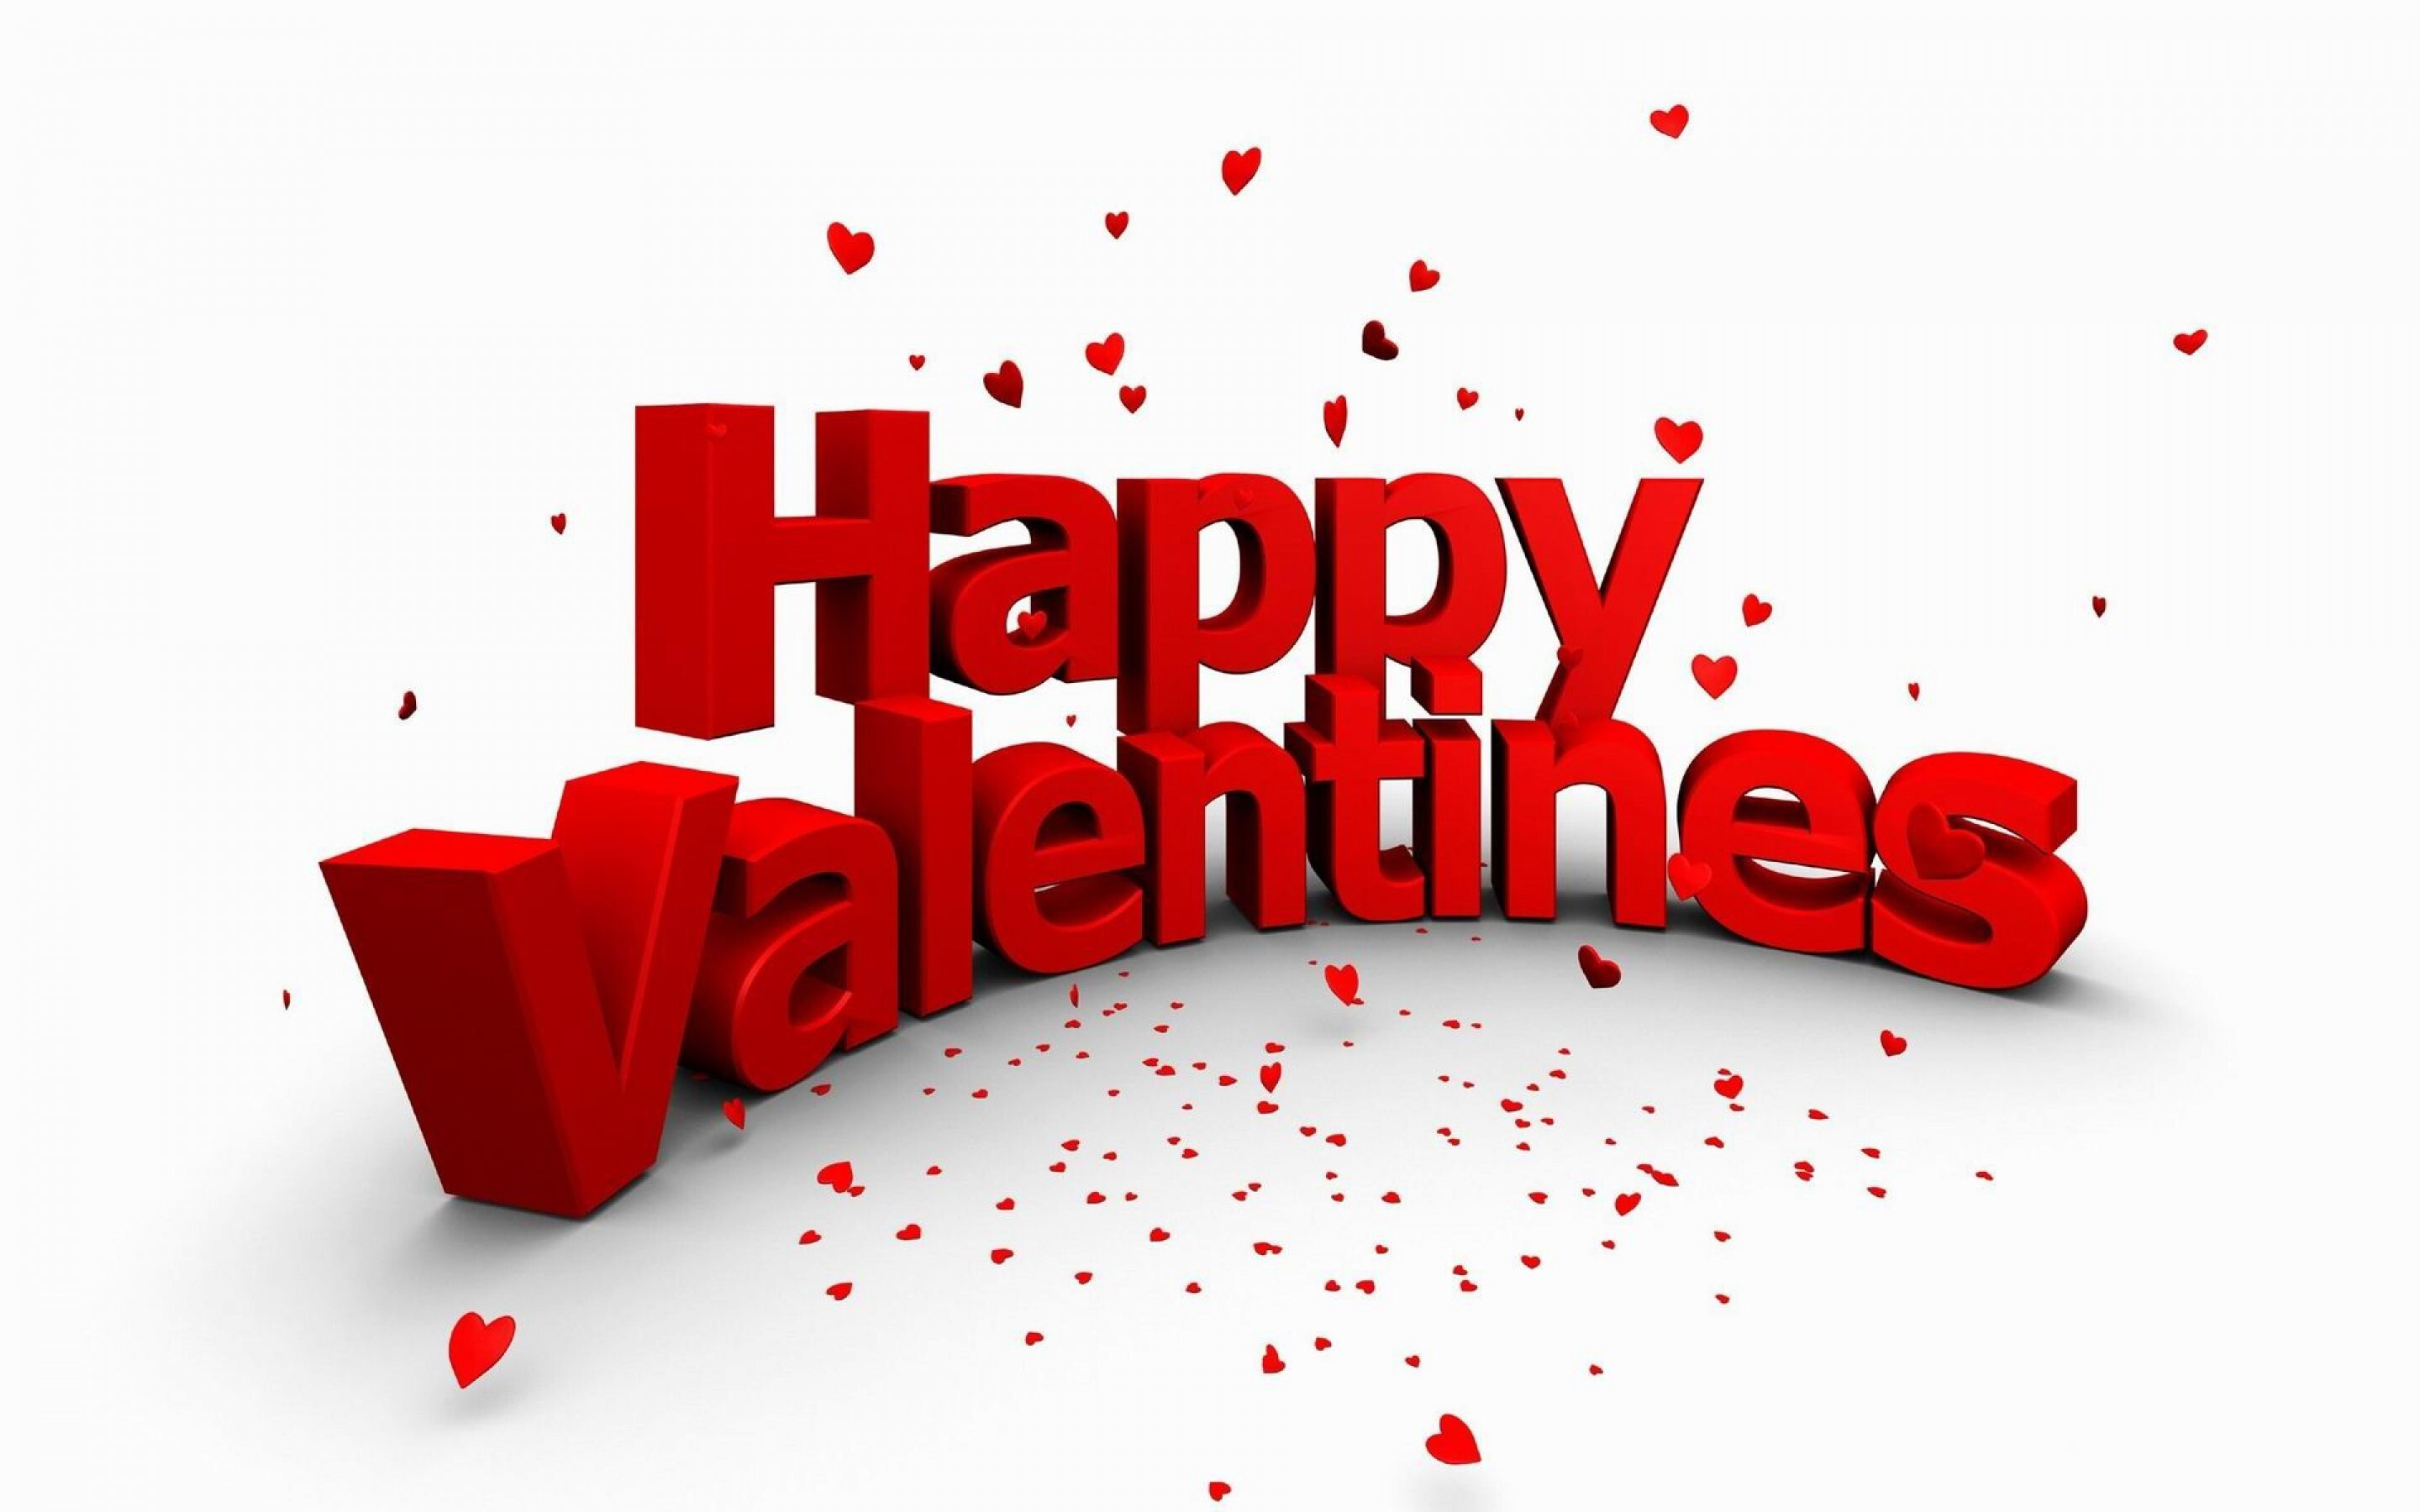 Happy Valentines Day In Red Text High Quality Laptop Desktop